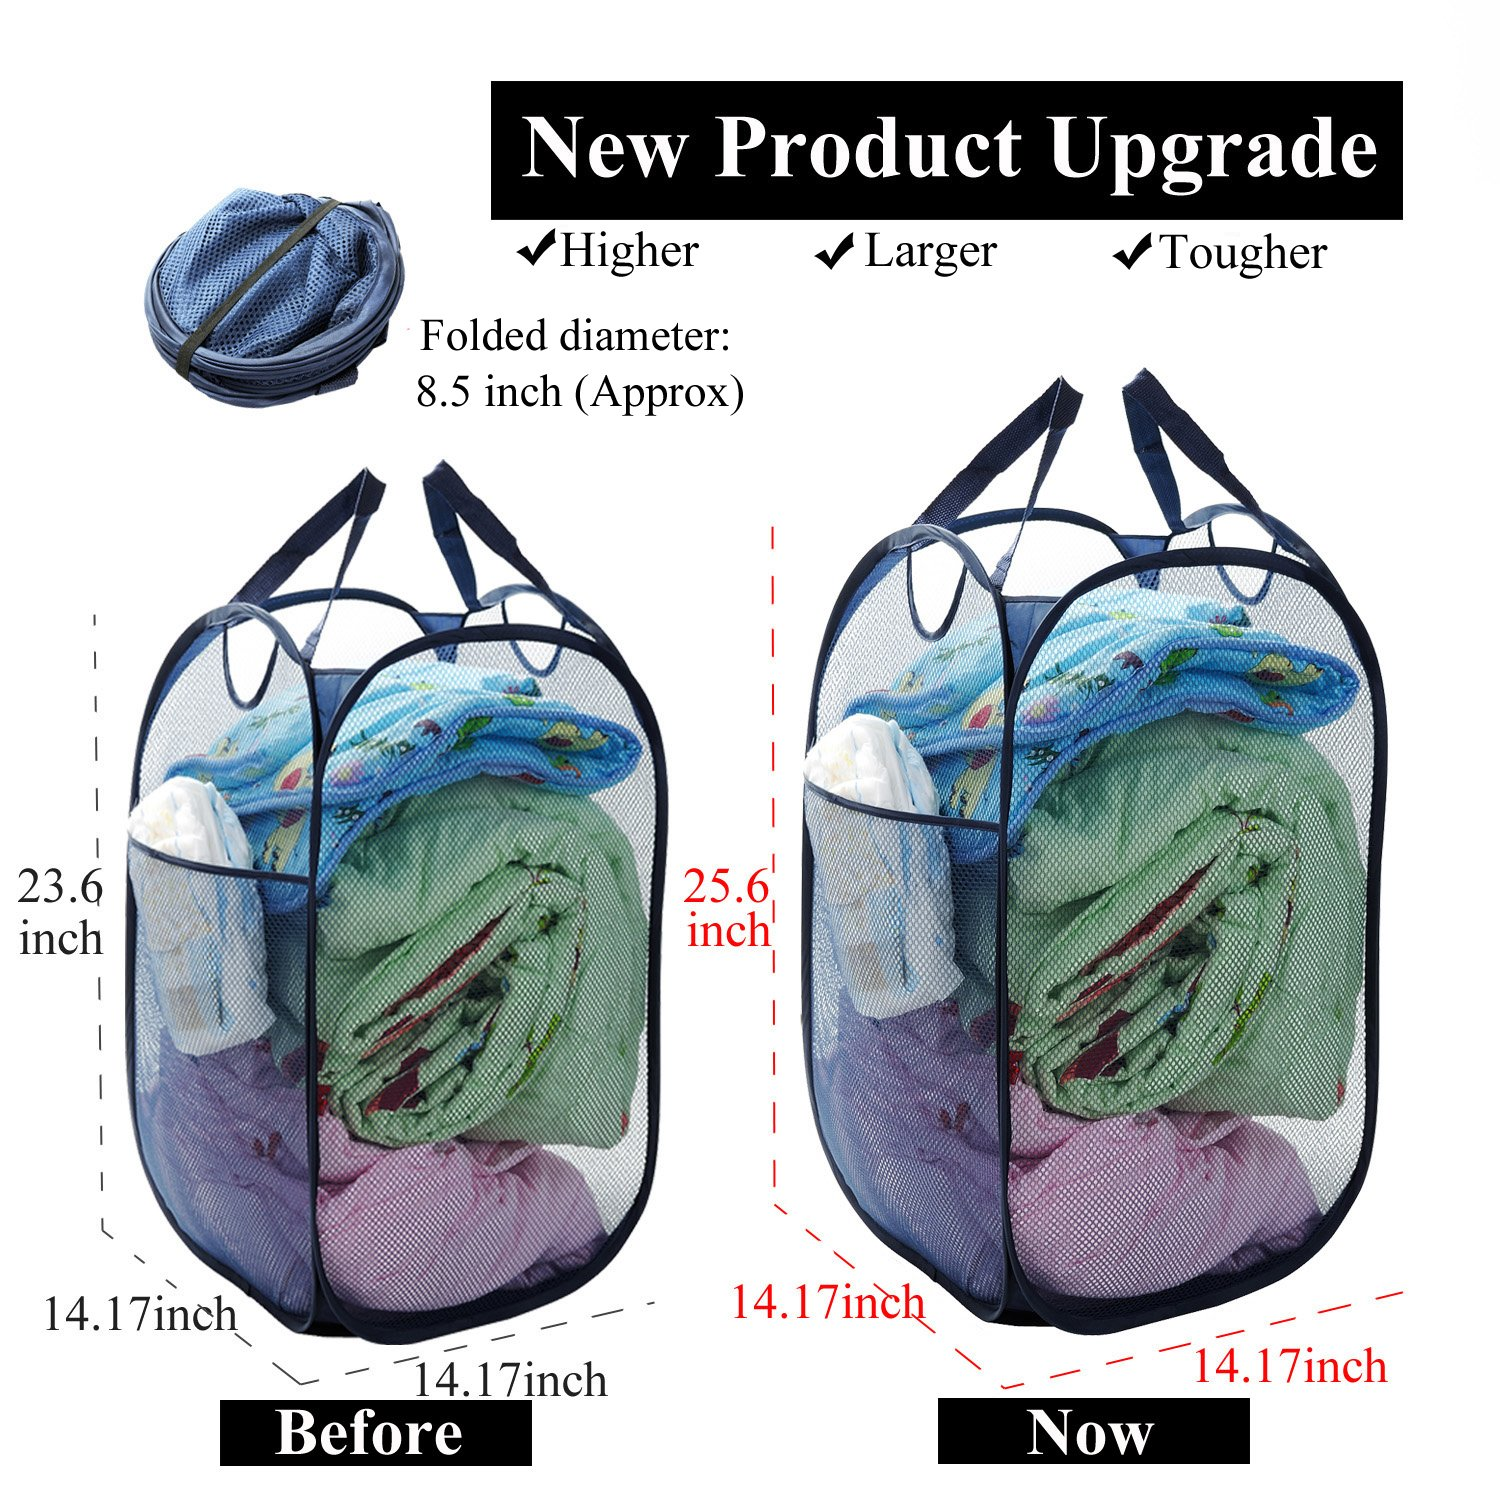 Mesh Laundry Hamper Collapsible Clothes Hamper 25.6 Inch Tall Smart Storage Pop Up Tall Laundry Basket for College Dorm Room Hamper 2 Pack